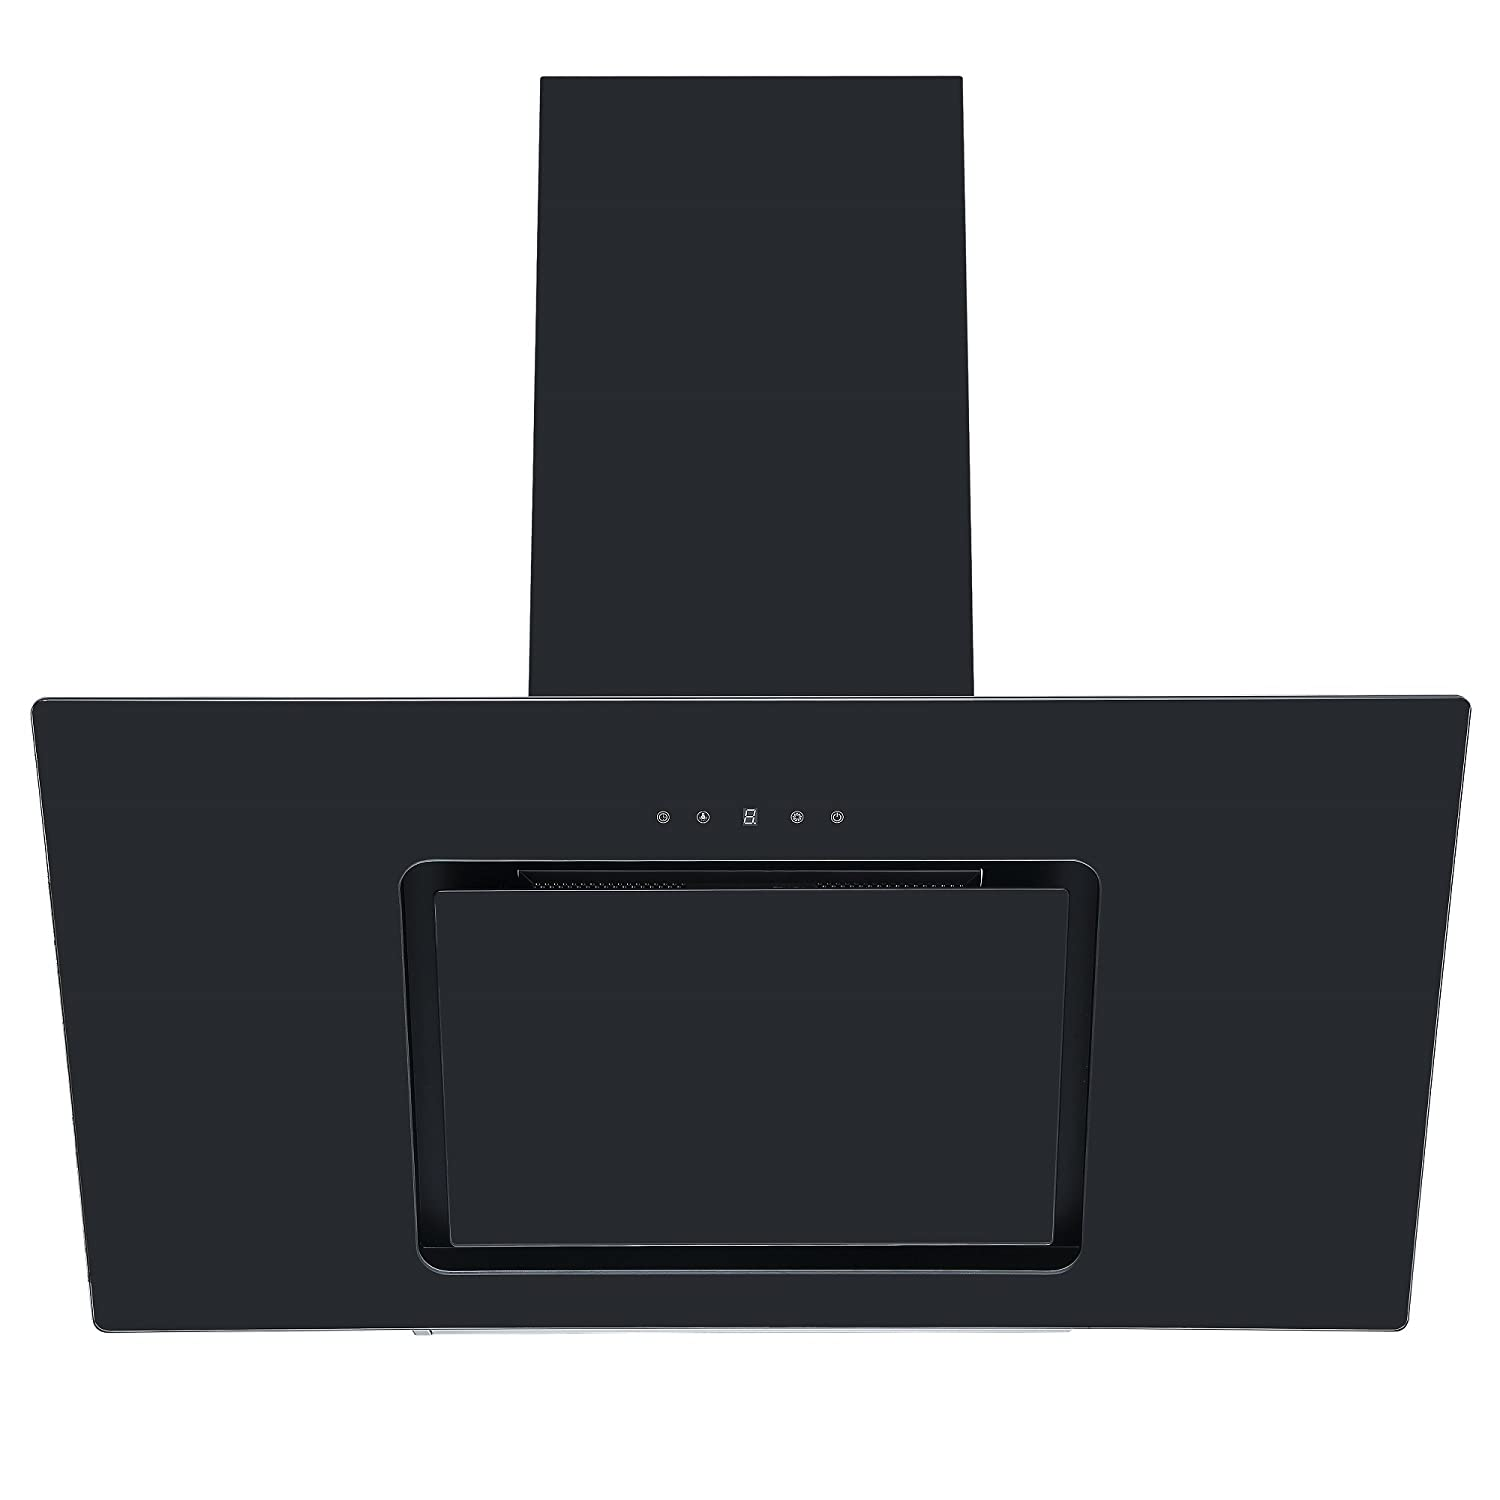 Cookology VER905BK 90cm Black Angled Glass Chimney Cooker Hood | Touch Controls [Energy Class C]